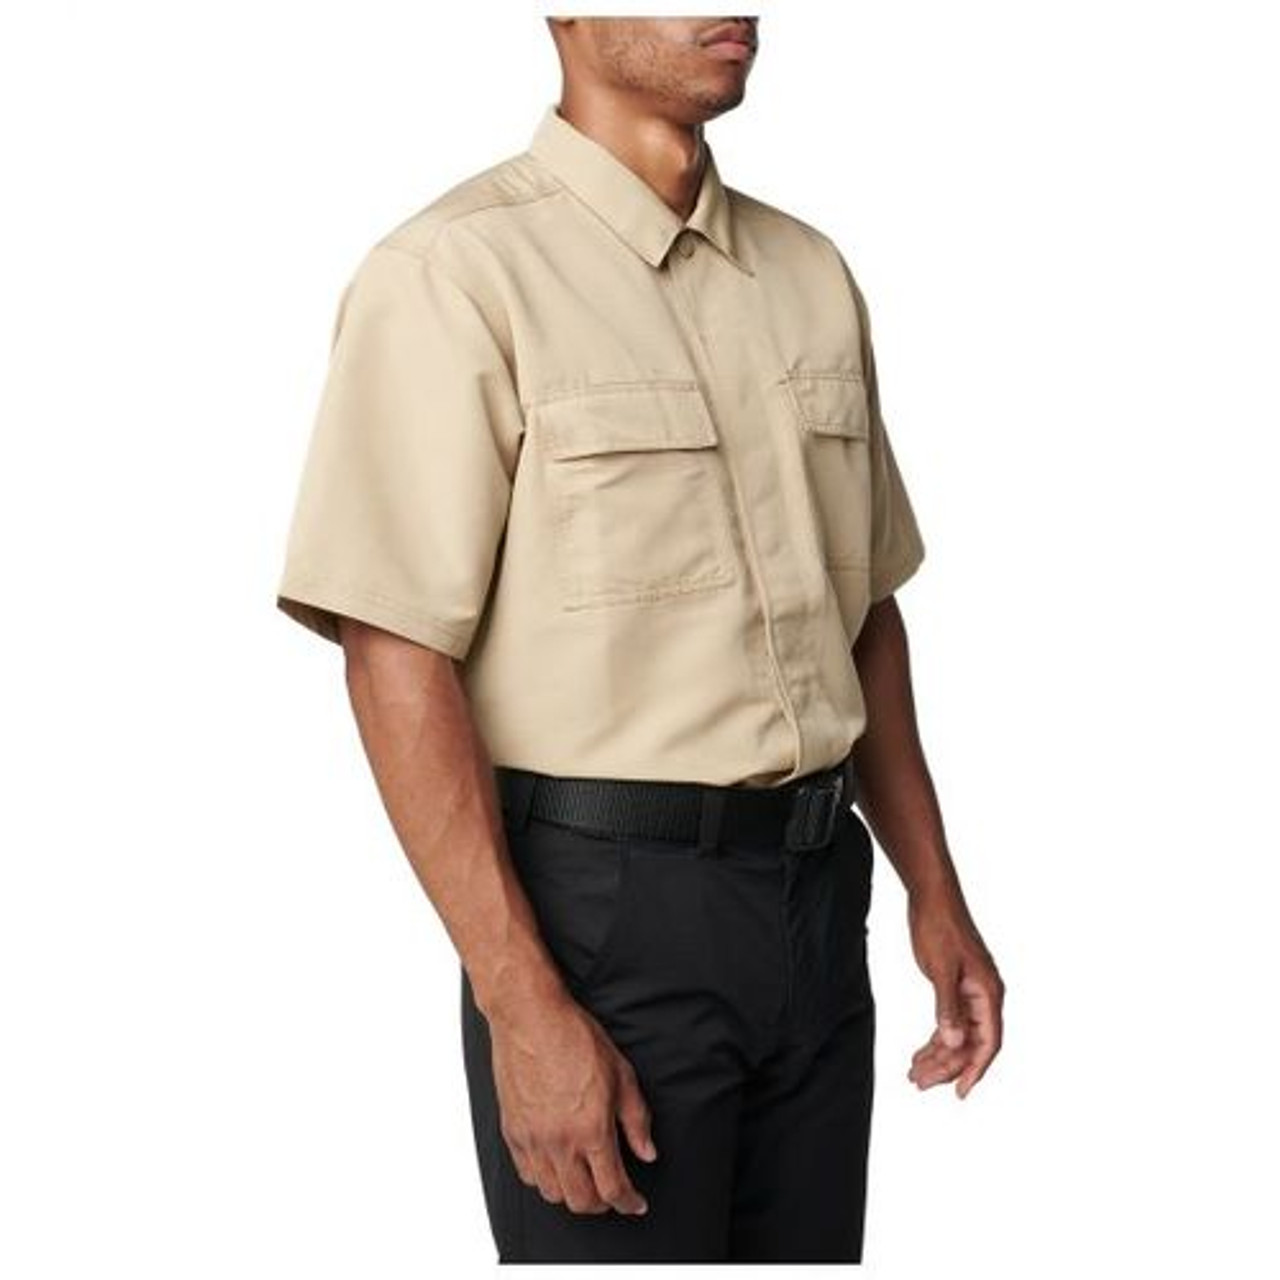 5.11 Tactical 71379 Men's Fast-Tac TDU Short Sleeve Button-Down Uniform Shirt, Water Resistant, Badge Tab, 2 Chest Pockets